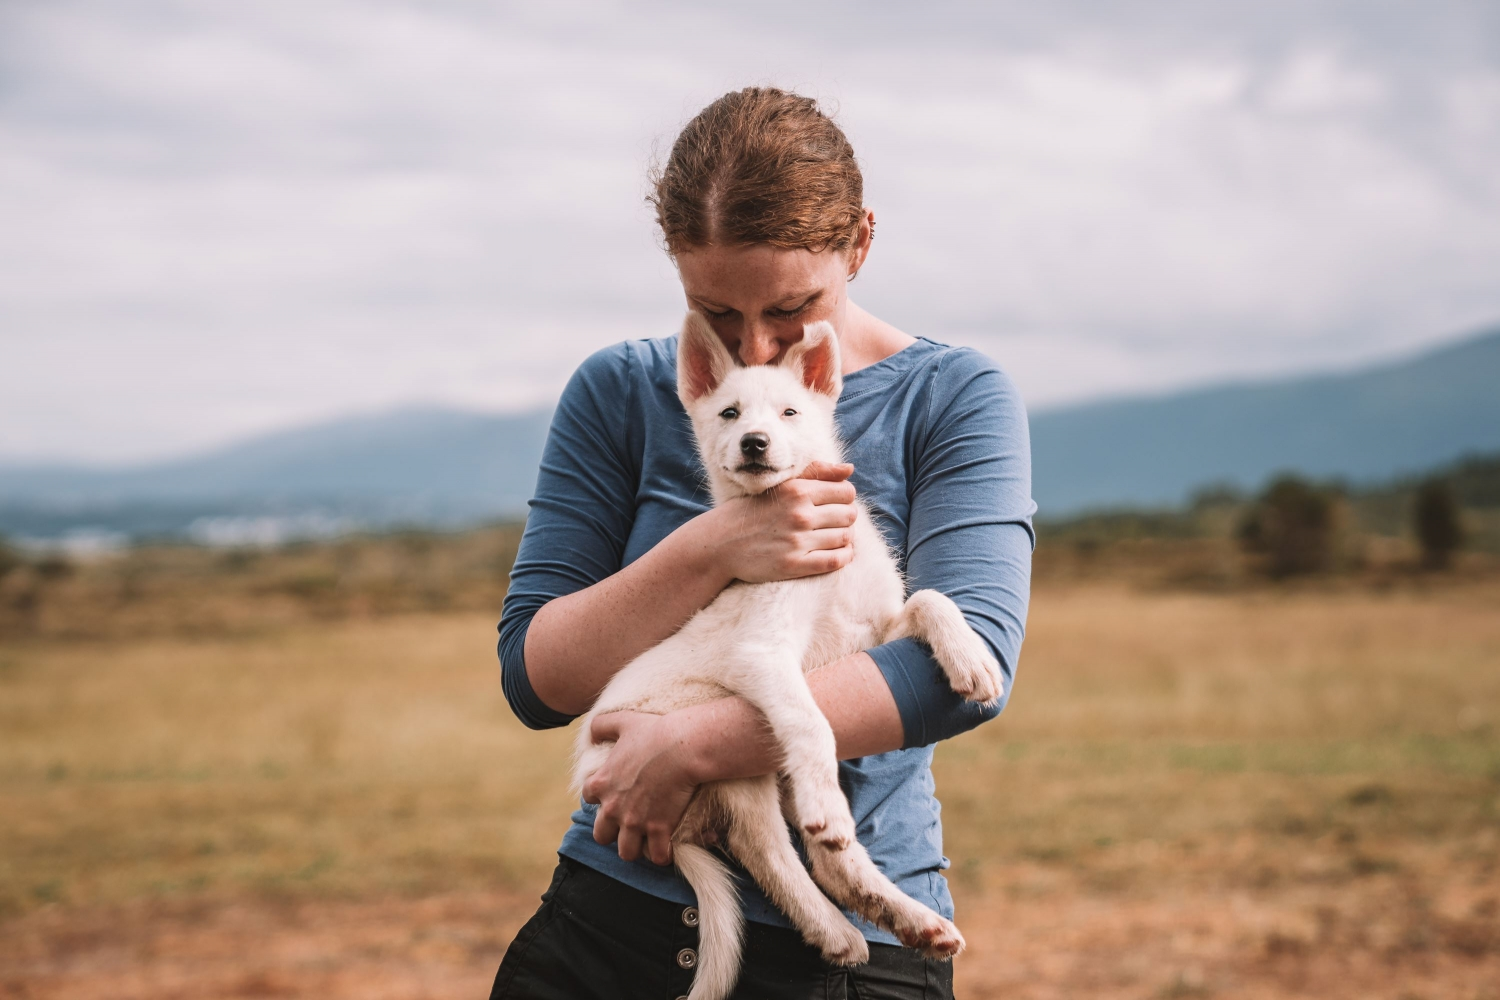 Lady holding a puppy